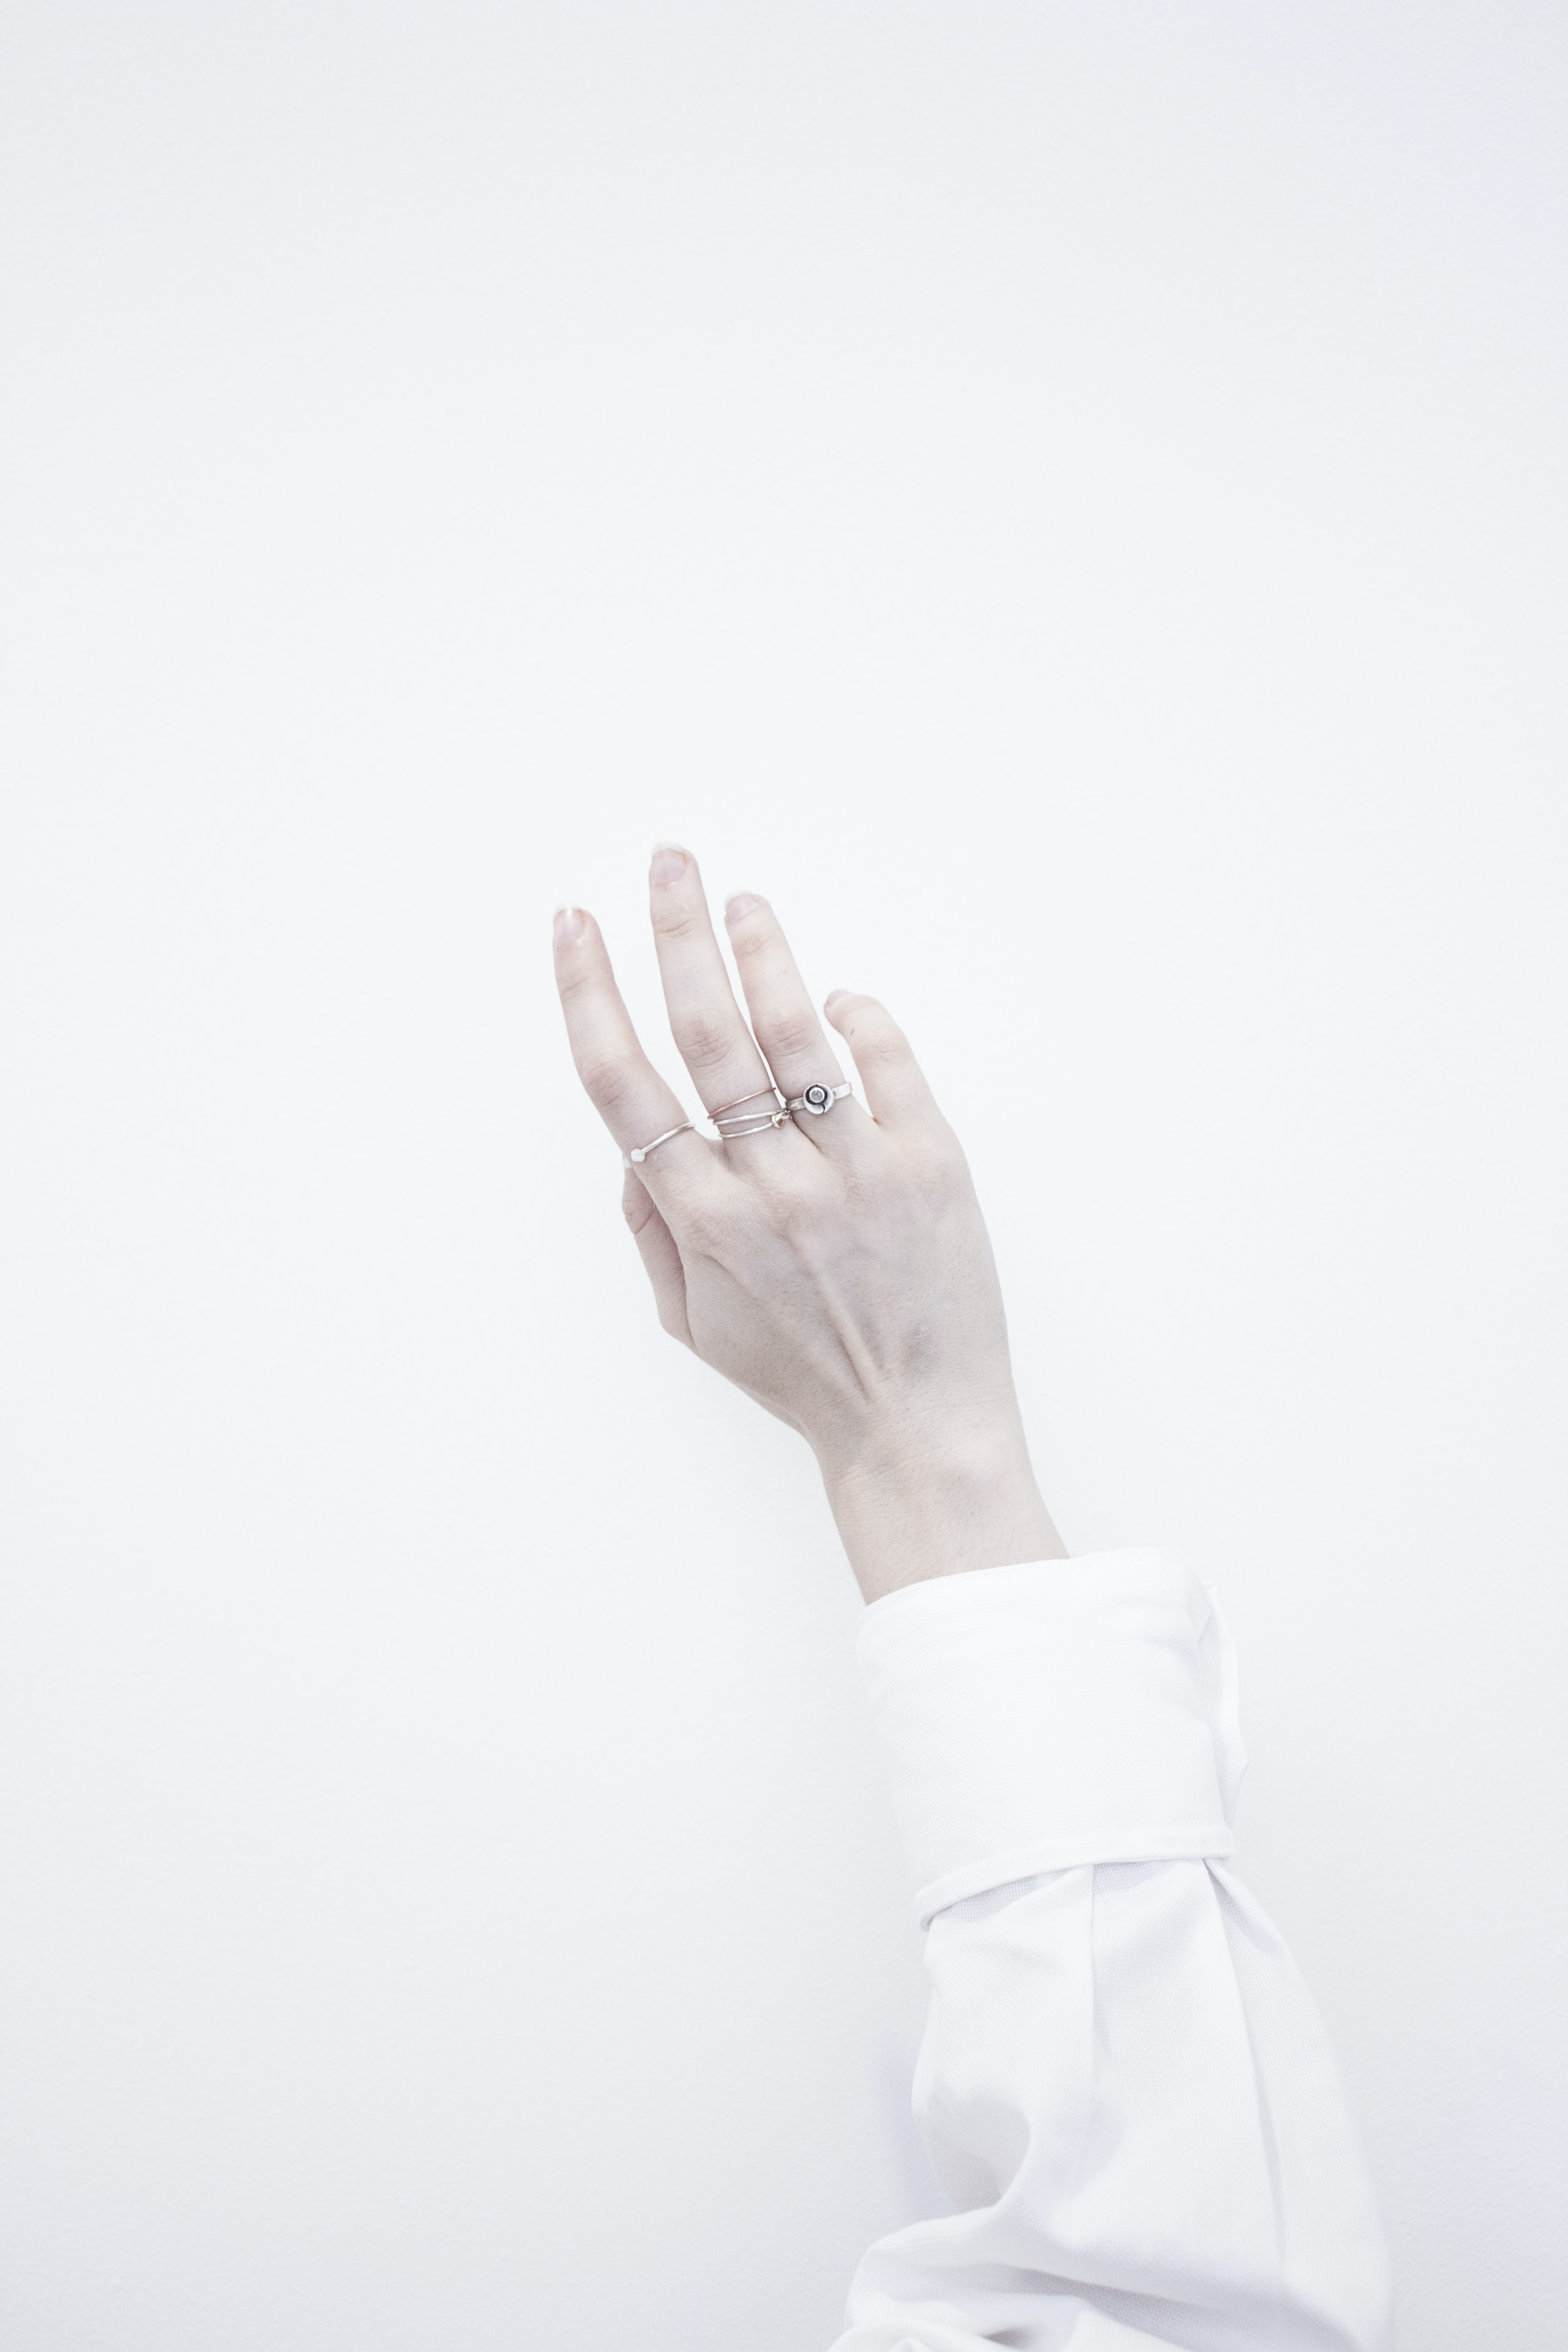 person's wearing several silver-colored rings